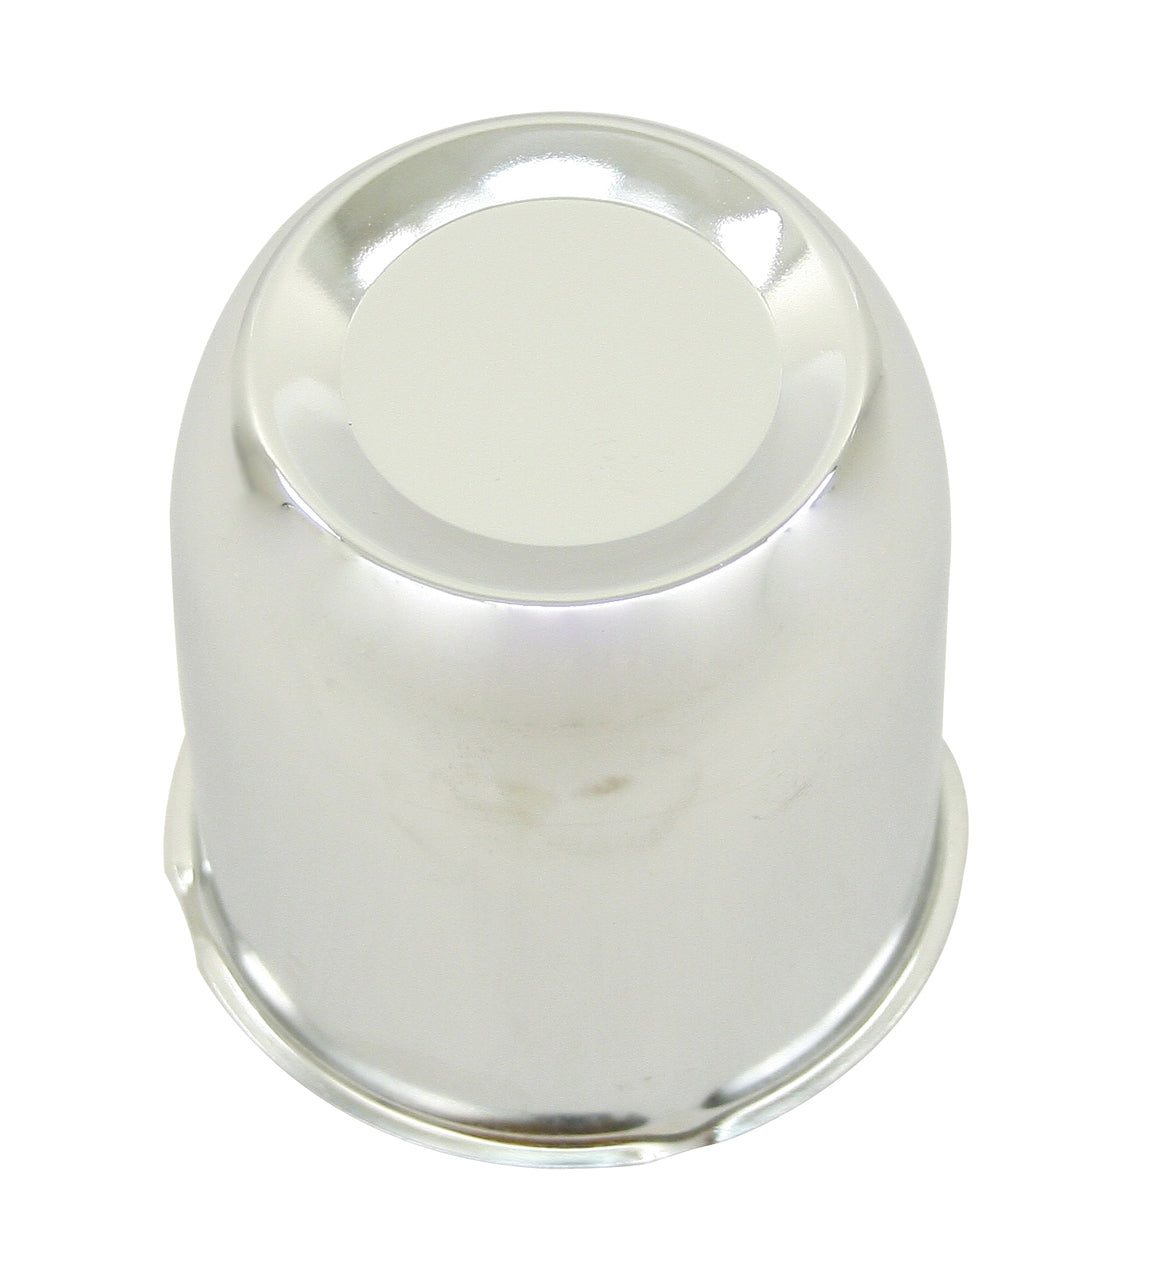 "CHROME CENTER WHEEL CAP-FITS ALL WHEELS WITH 3-1/4"" HOLE"